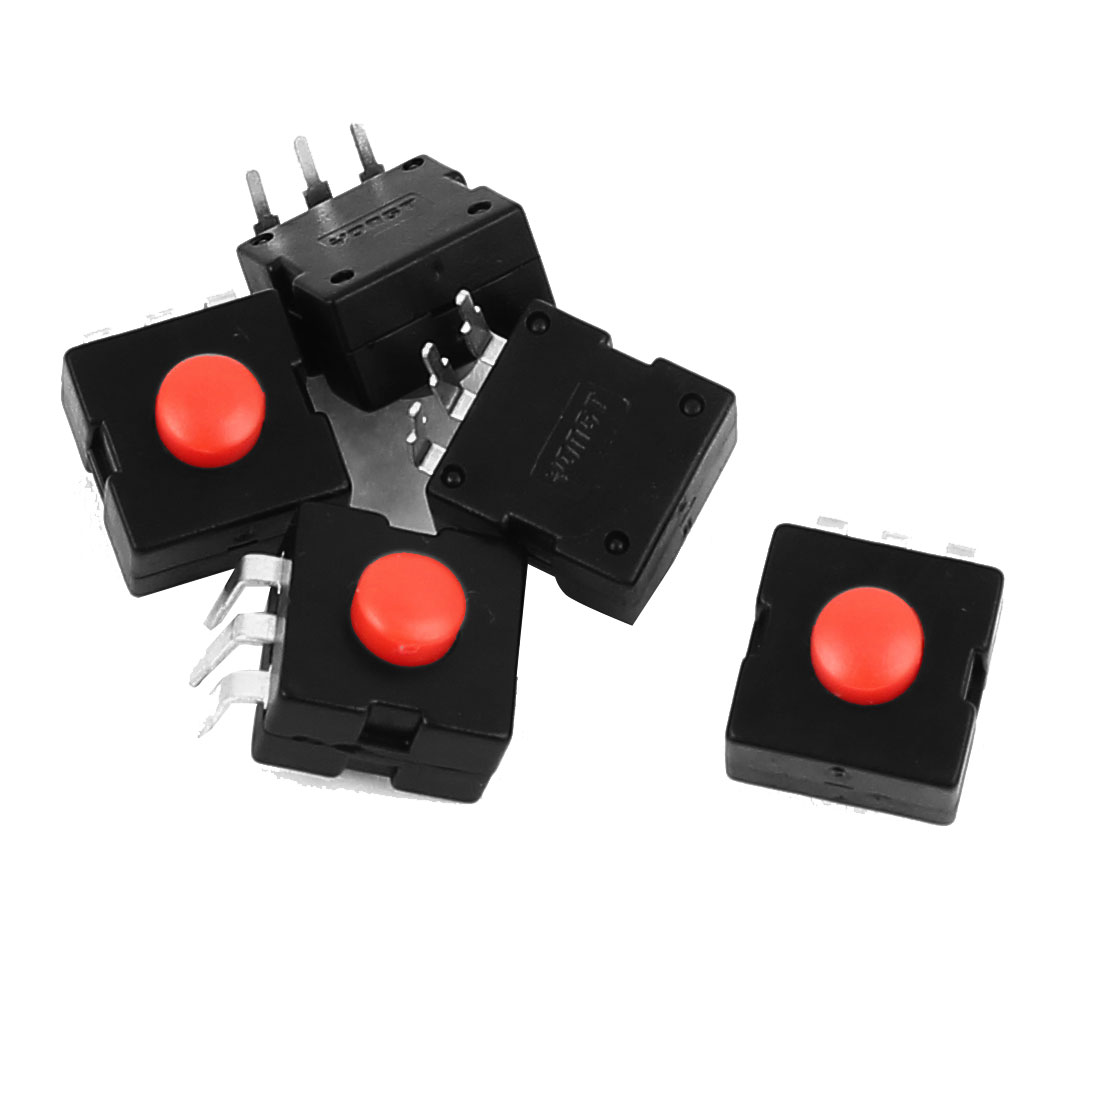 5 Pcs Vertical 3 Terminals Momentary Square Torch Push Button Switch Black